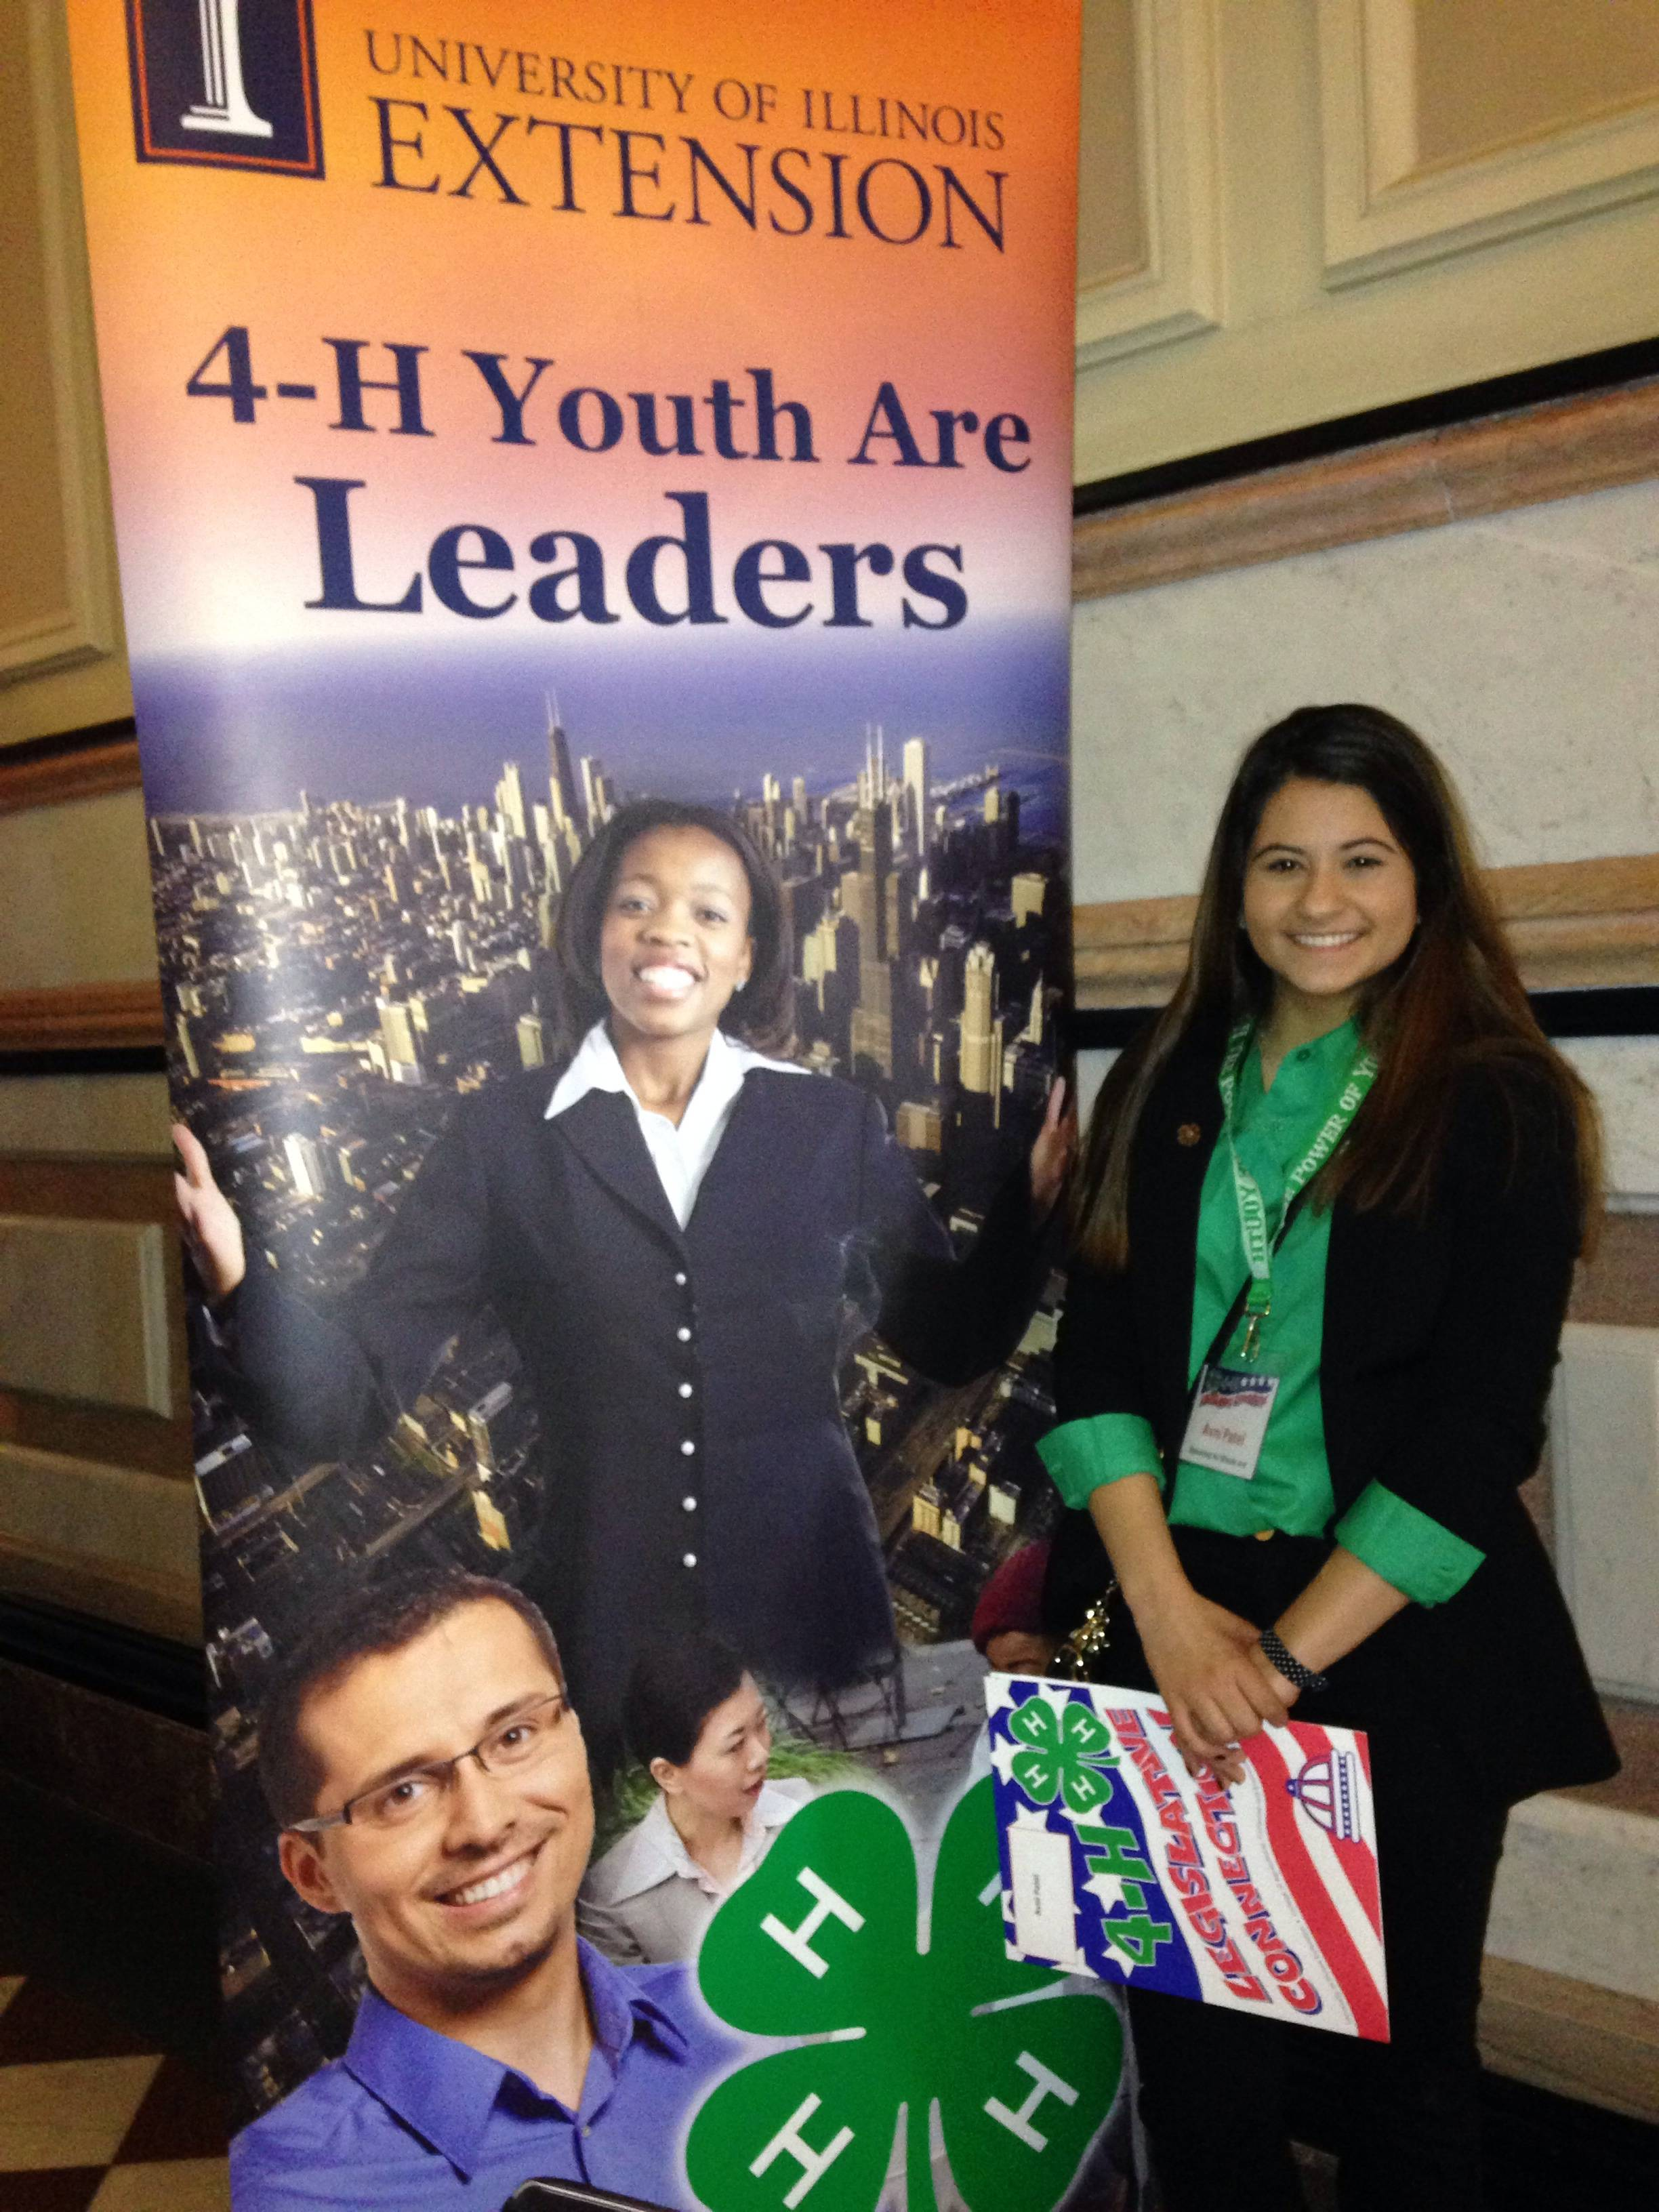 Avni Patel, 4-H member of Busy Beavers in Lake County.Cindy Sarkady